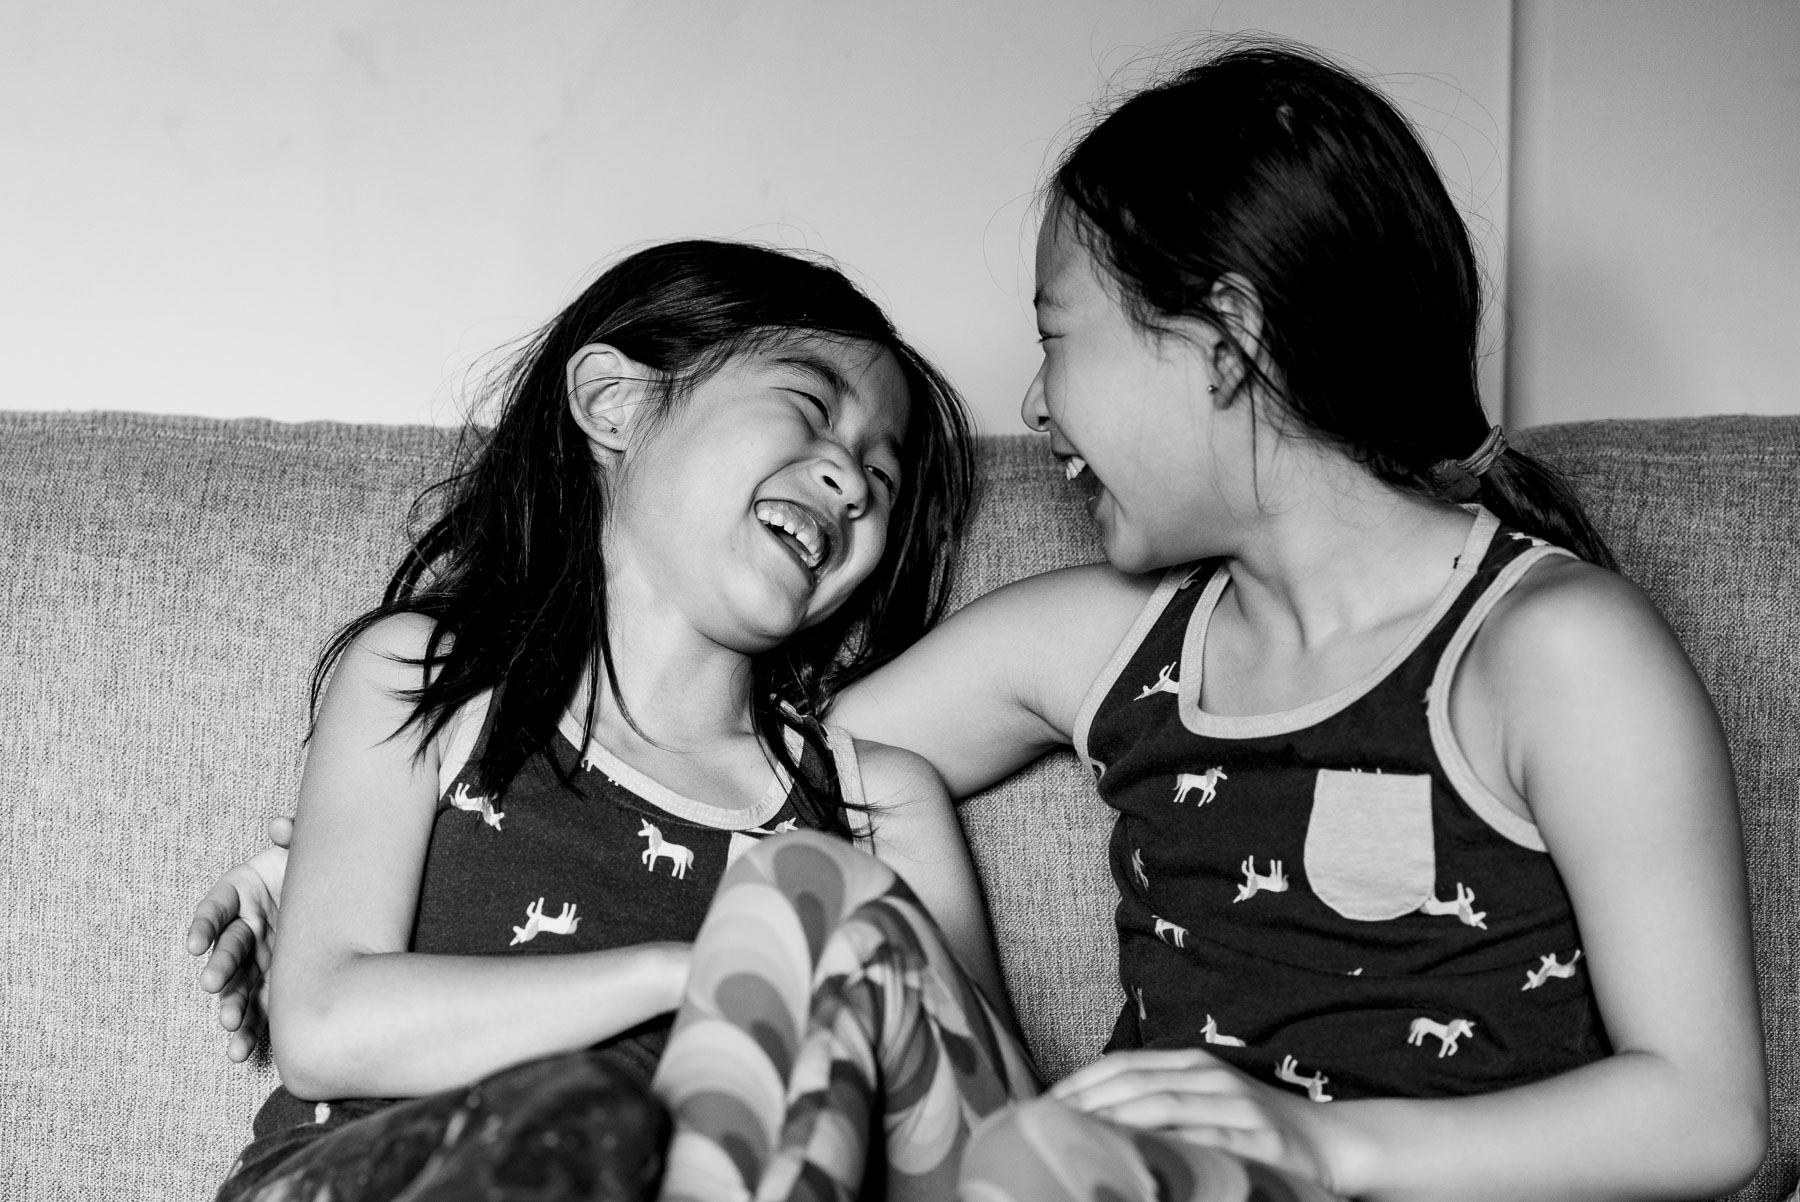 Asian sisters laughing together at home